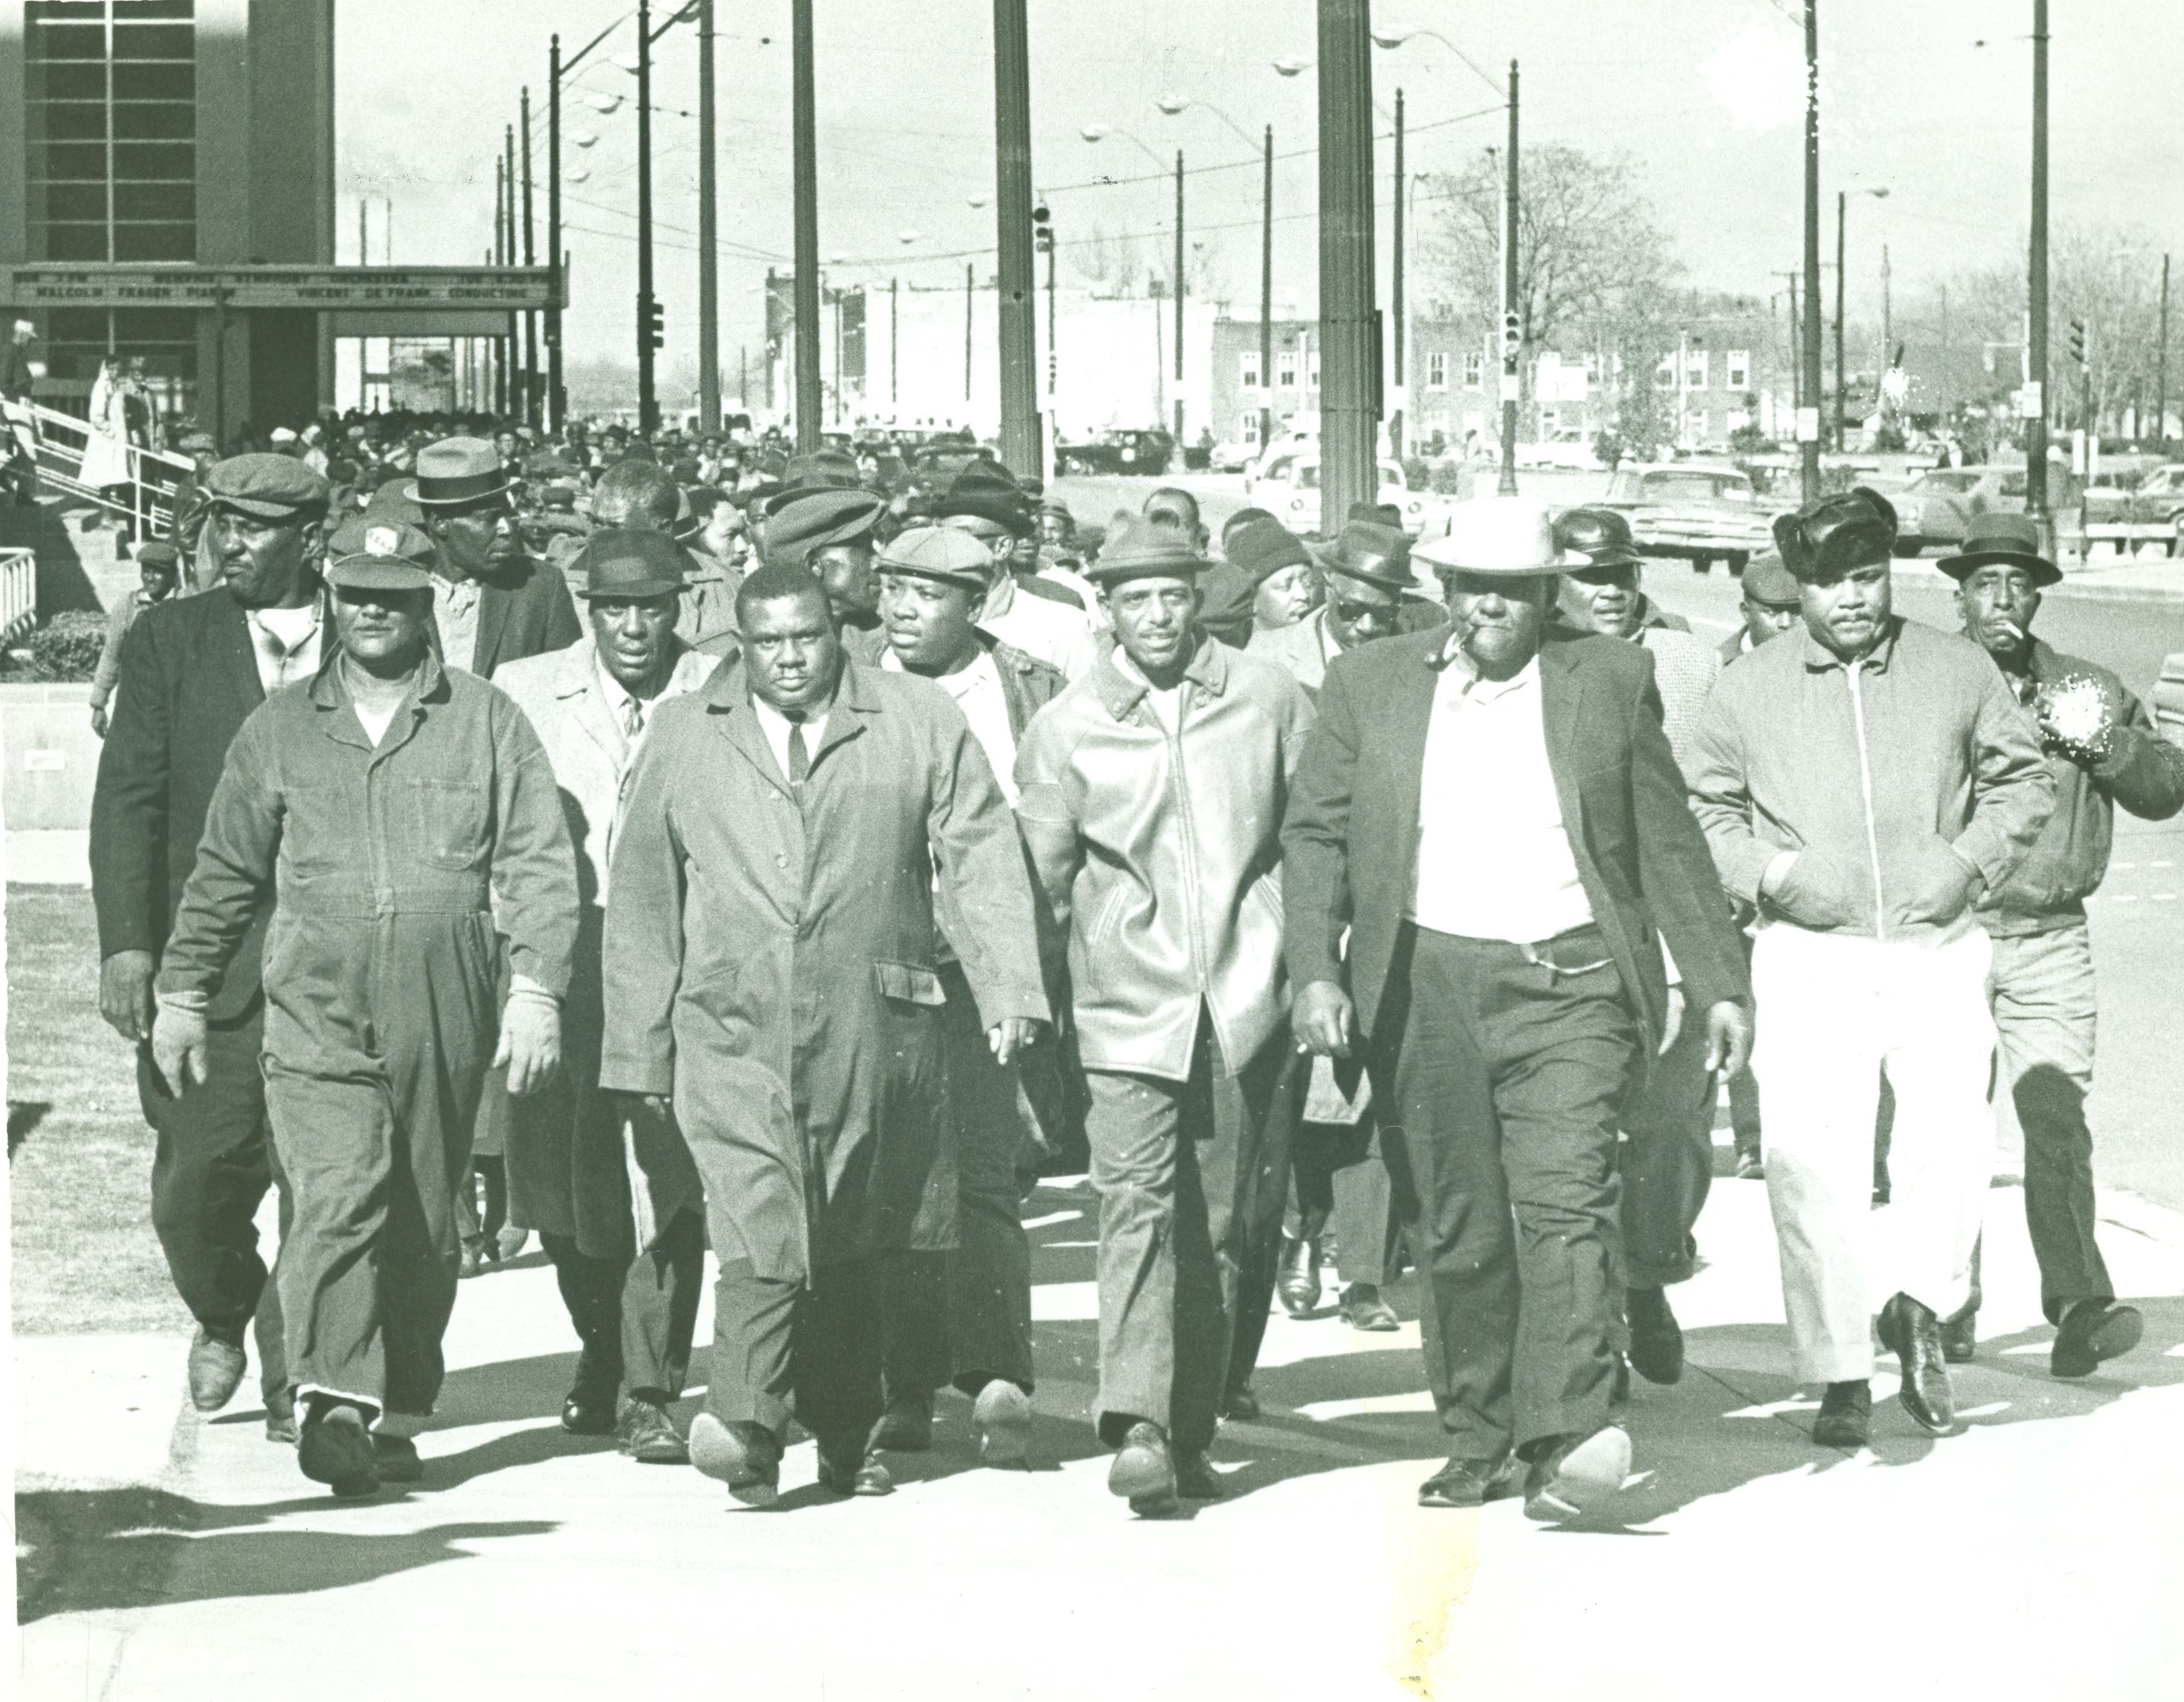 Sanitation Workers March